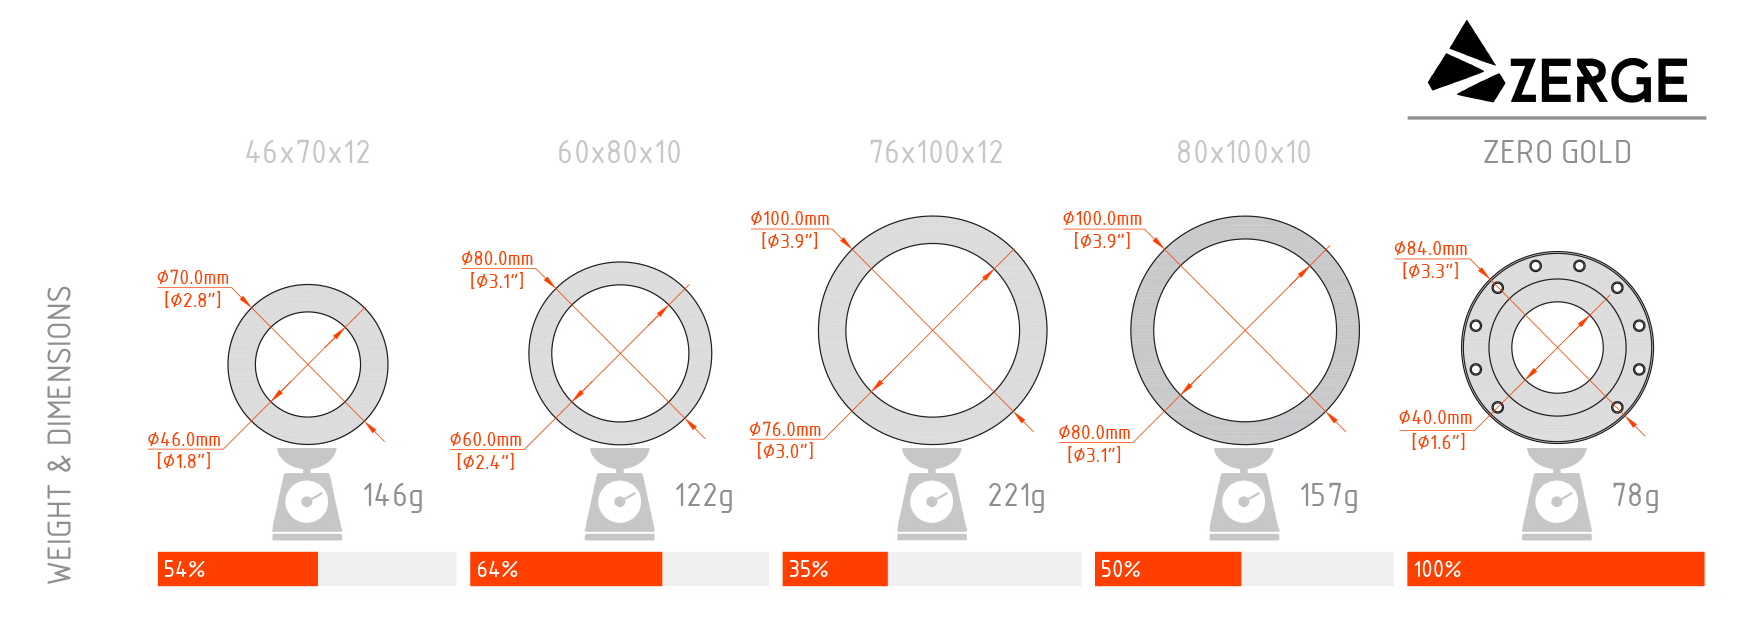 zergeoutdoor_zero_ring_info_weight and dimensions_1750